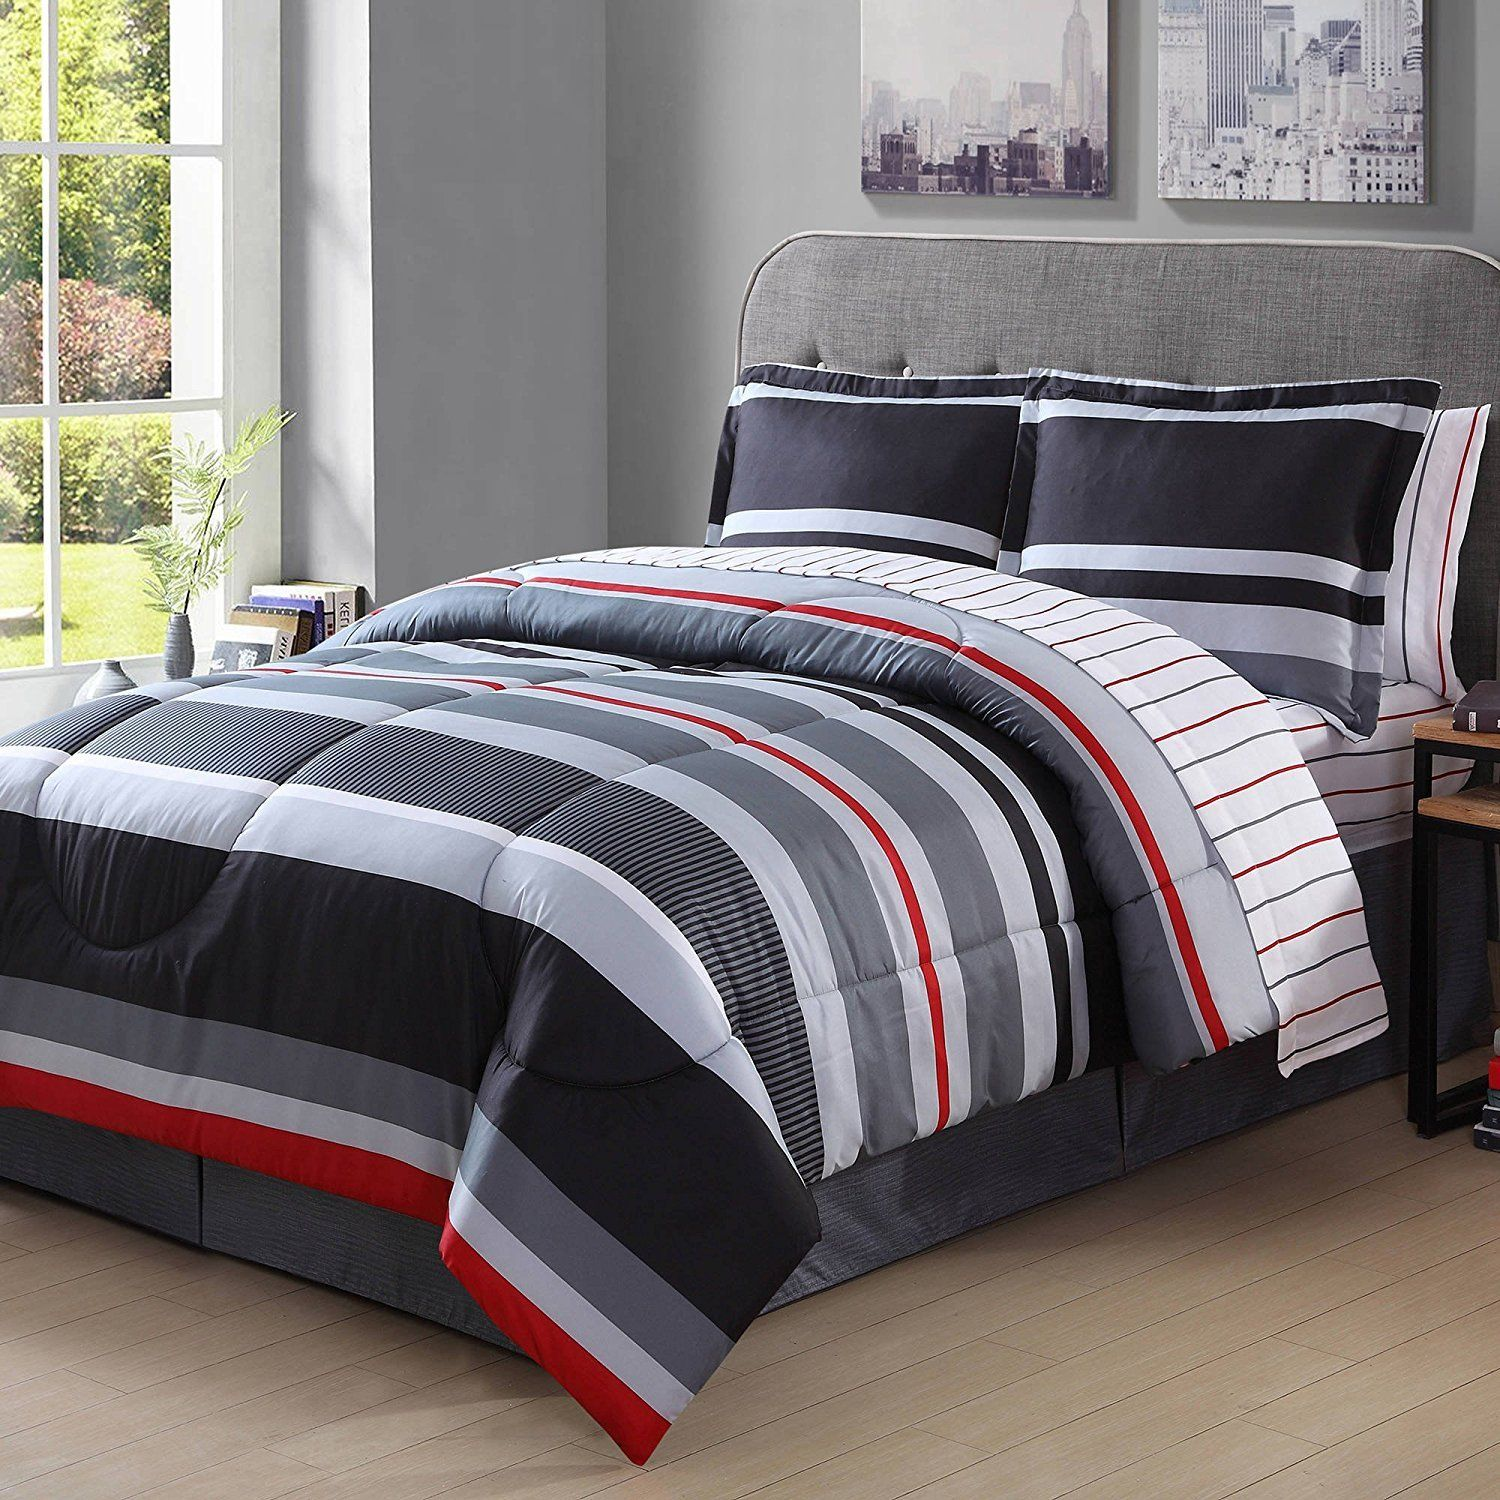 fluffy gray files black table and stunning best bed concept blue wooden bedroom sets walls for bedspblue bedding grey dark designs the white ideas with comforter red